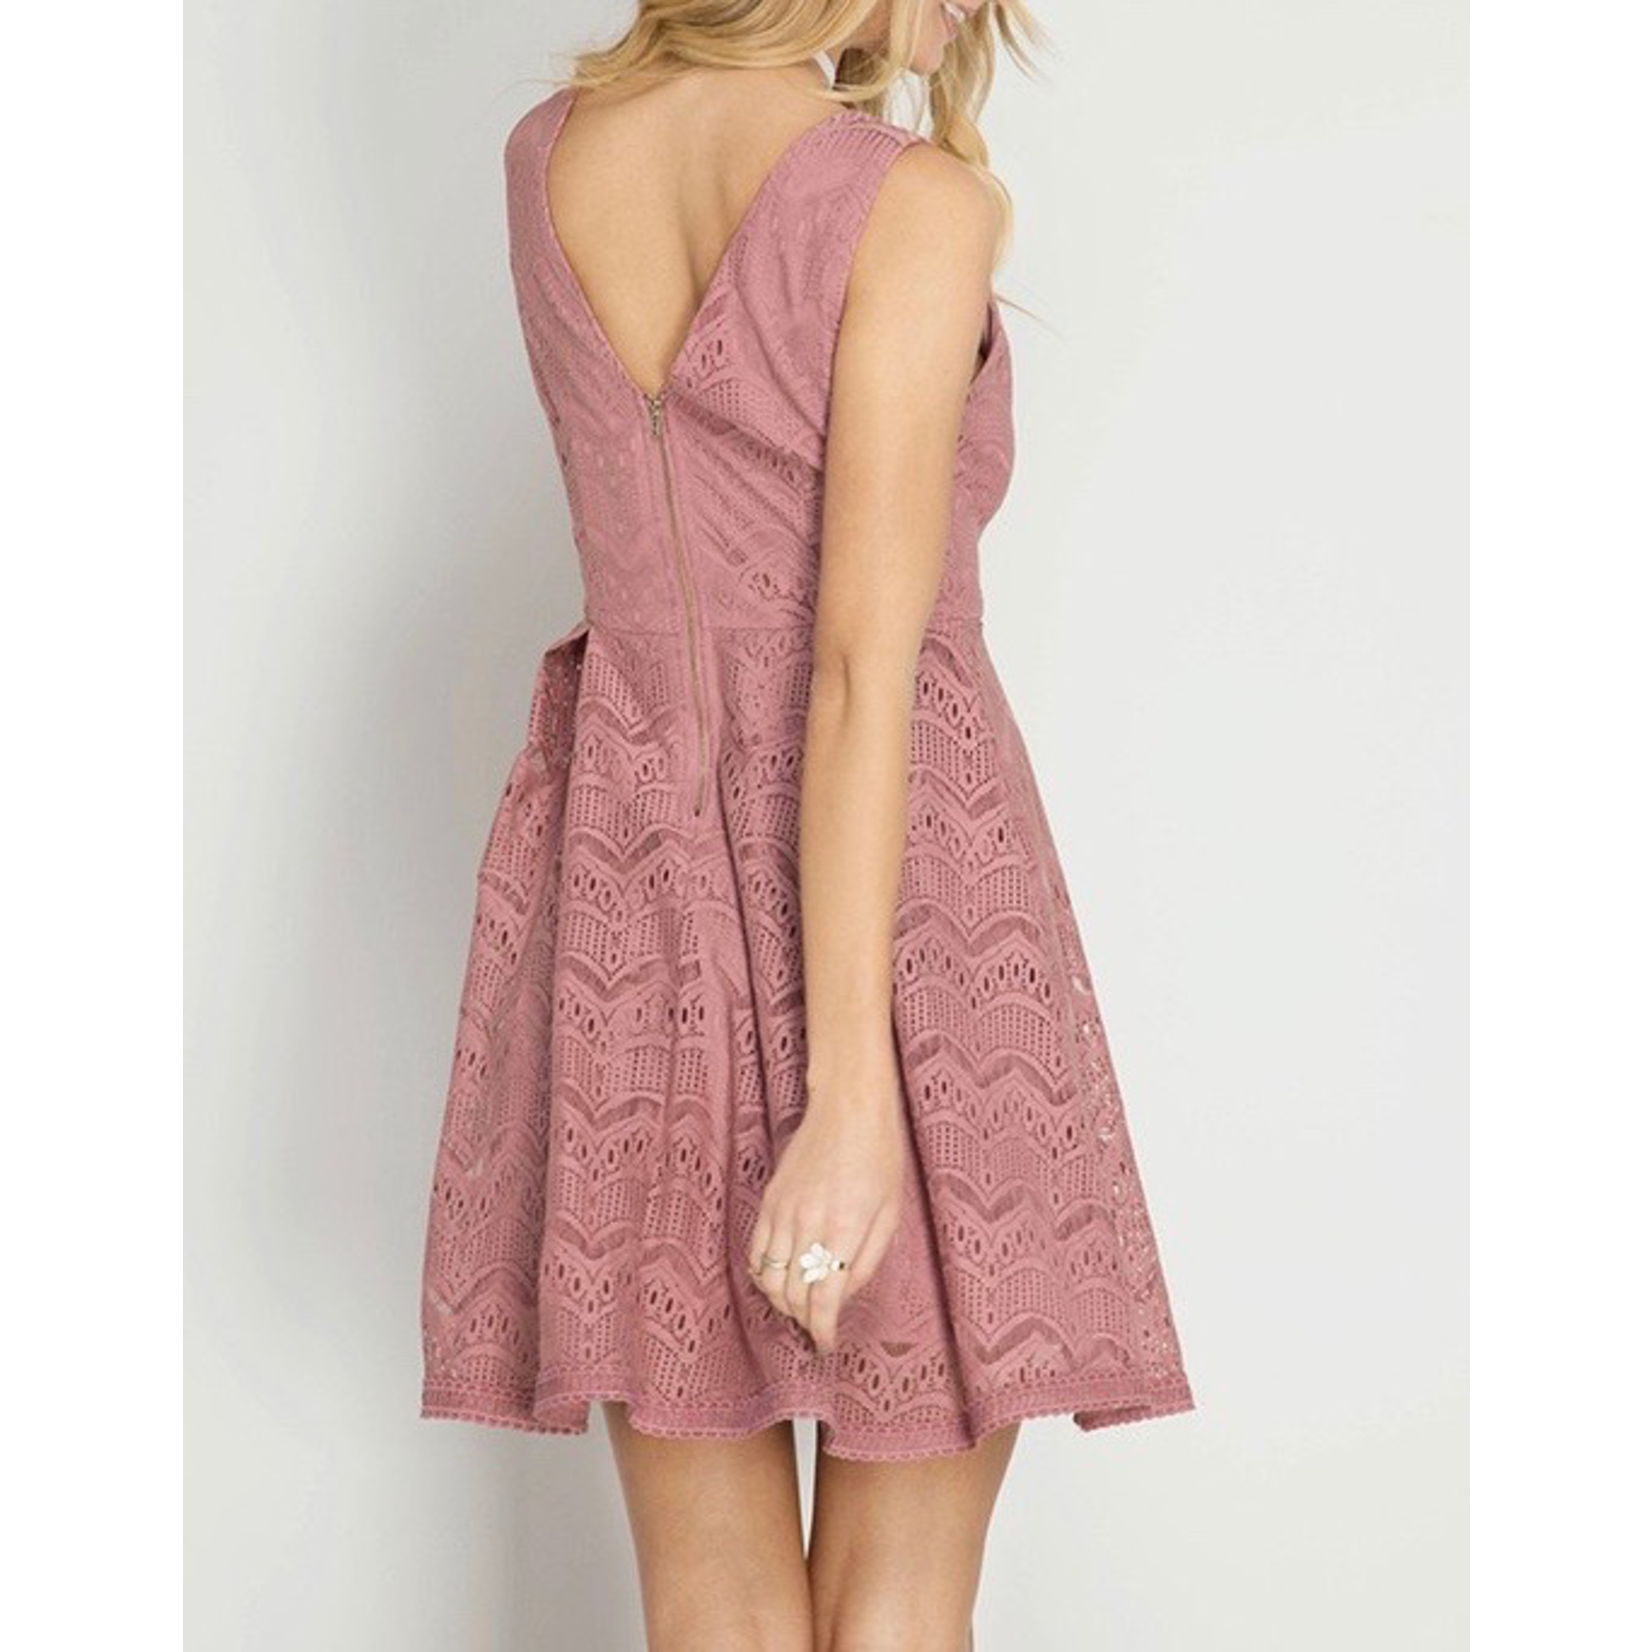 She & Sky Sleeveless Fit and Flare Dress, sale item, Was $54